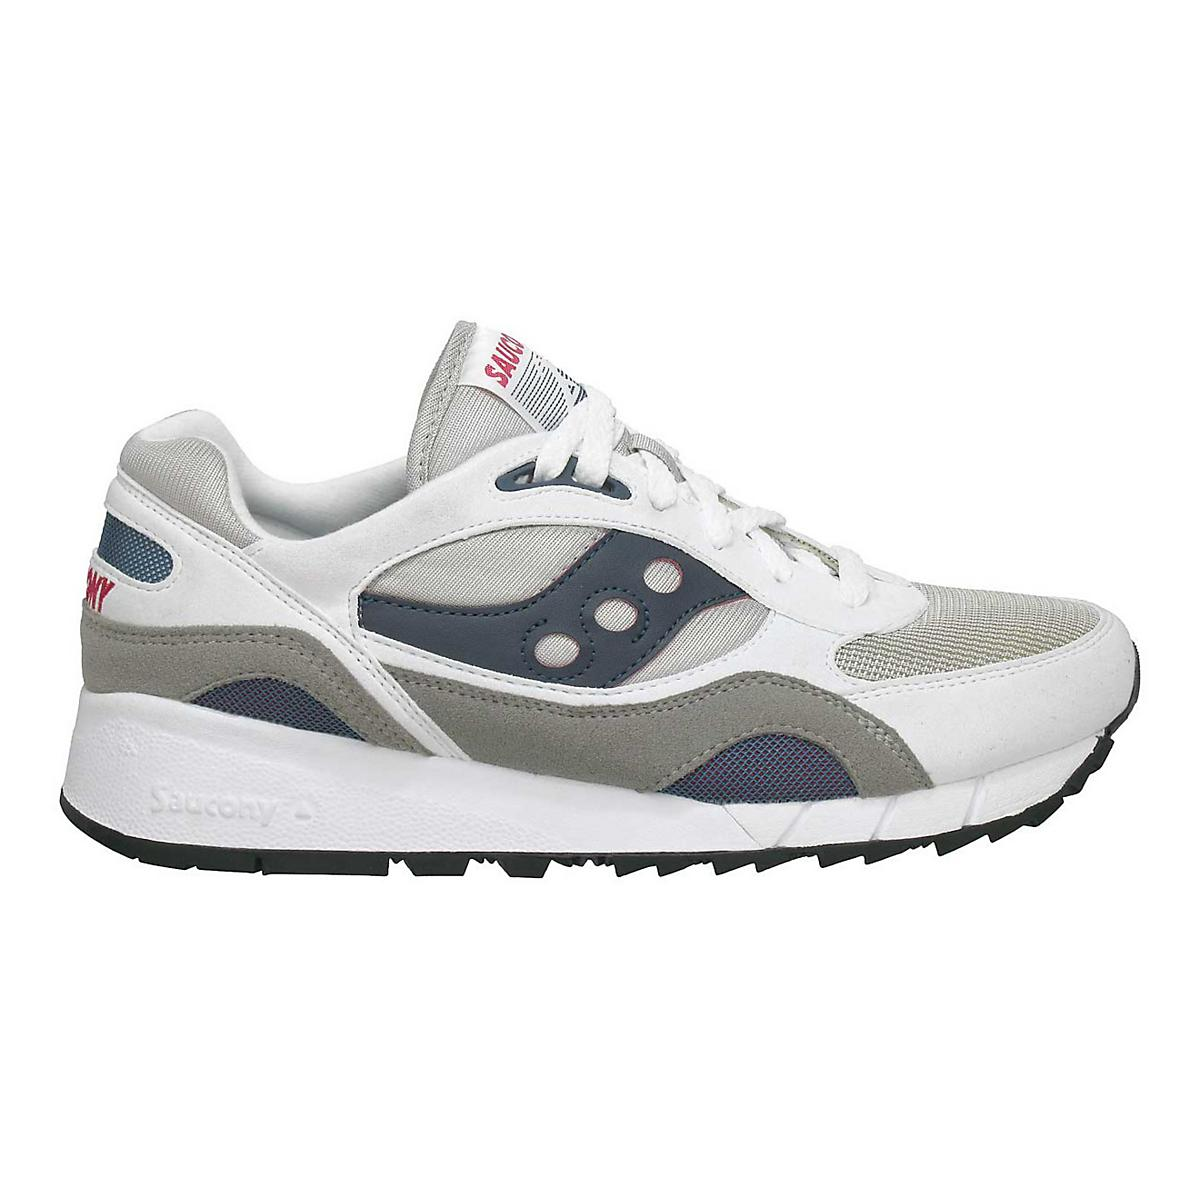 9faaa42f4b6c Mens Saucony Shadow 6000 Running Shoe at Road Runner Sports